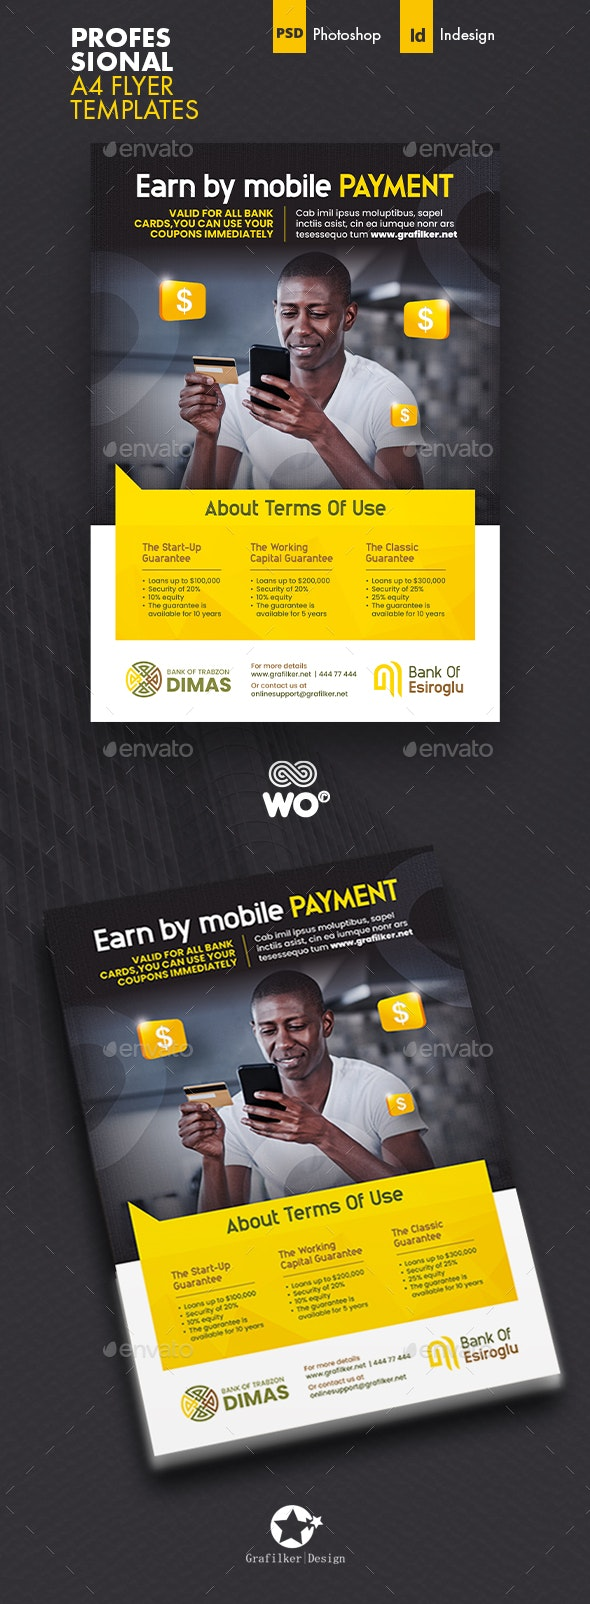 Mobile Payment Flyer Templates - Corporate Flyers